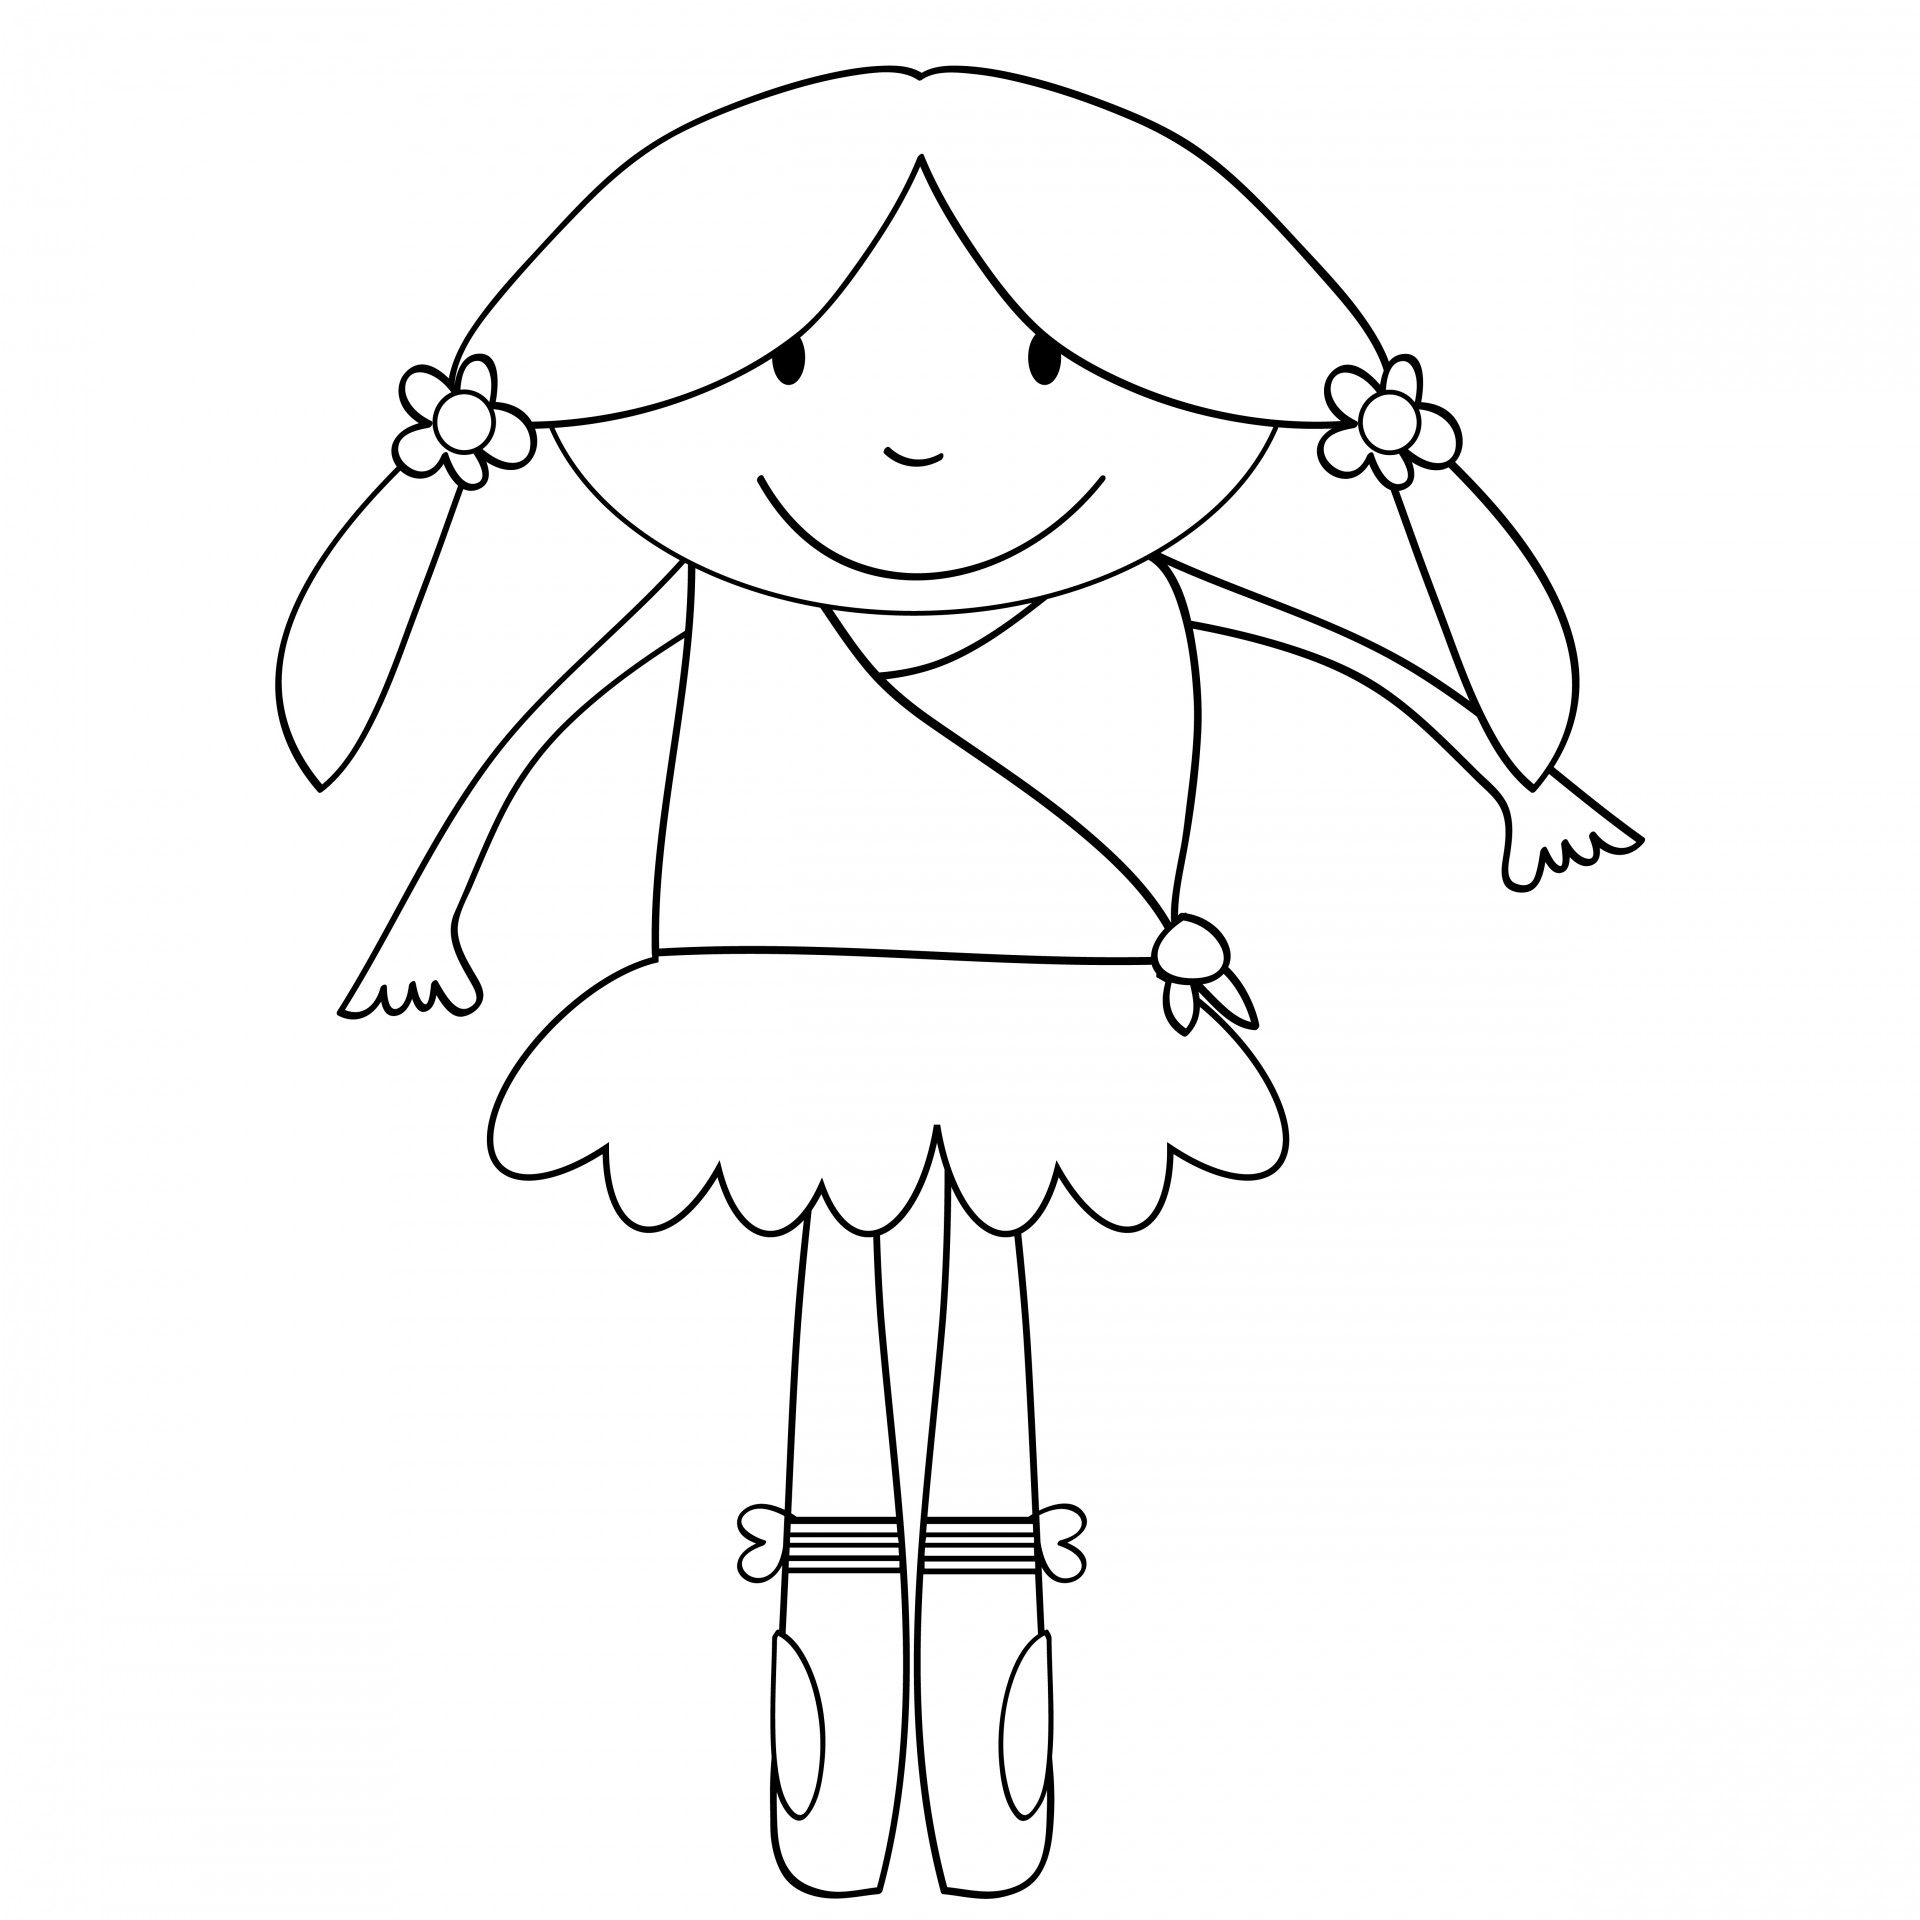 Ballerina Kids Coloring Page Free Stock Photo - Public